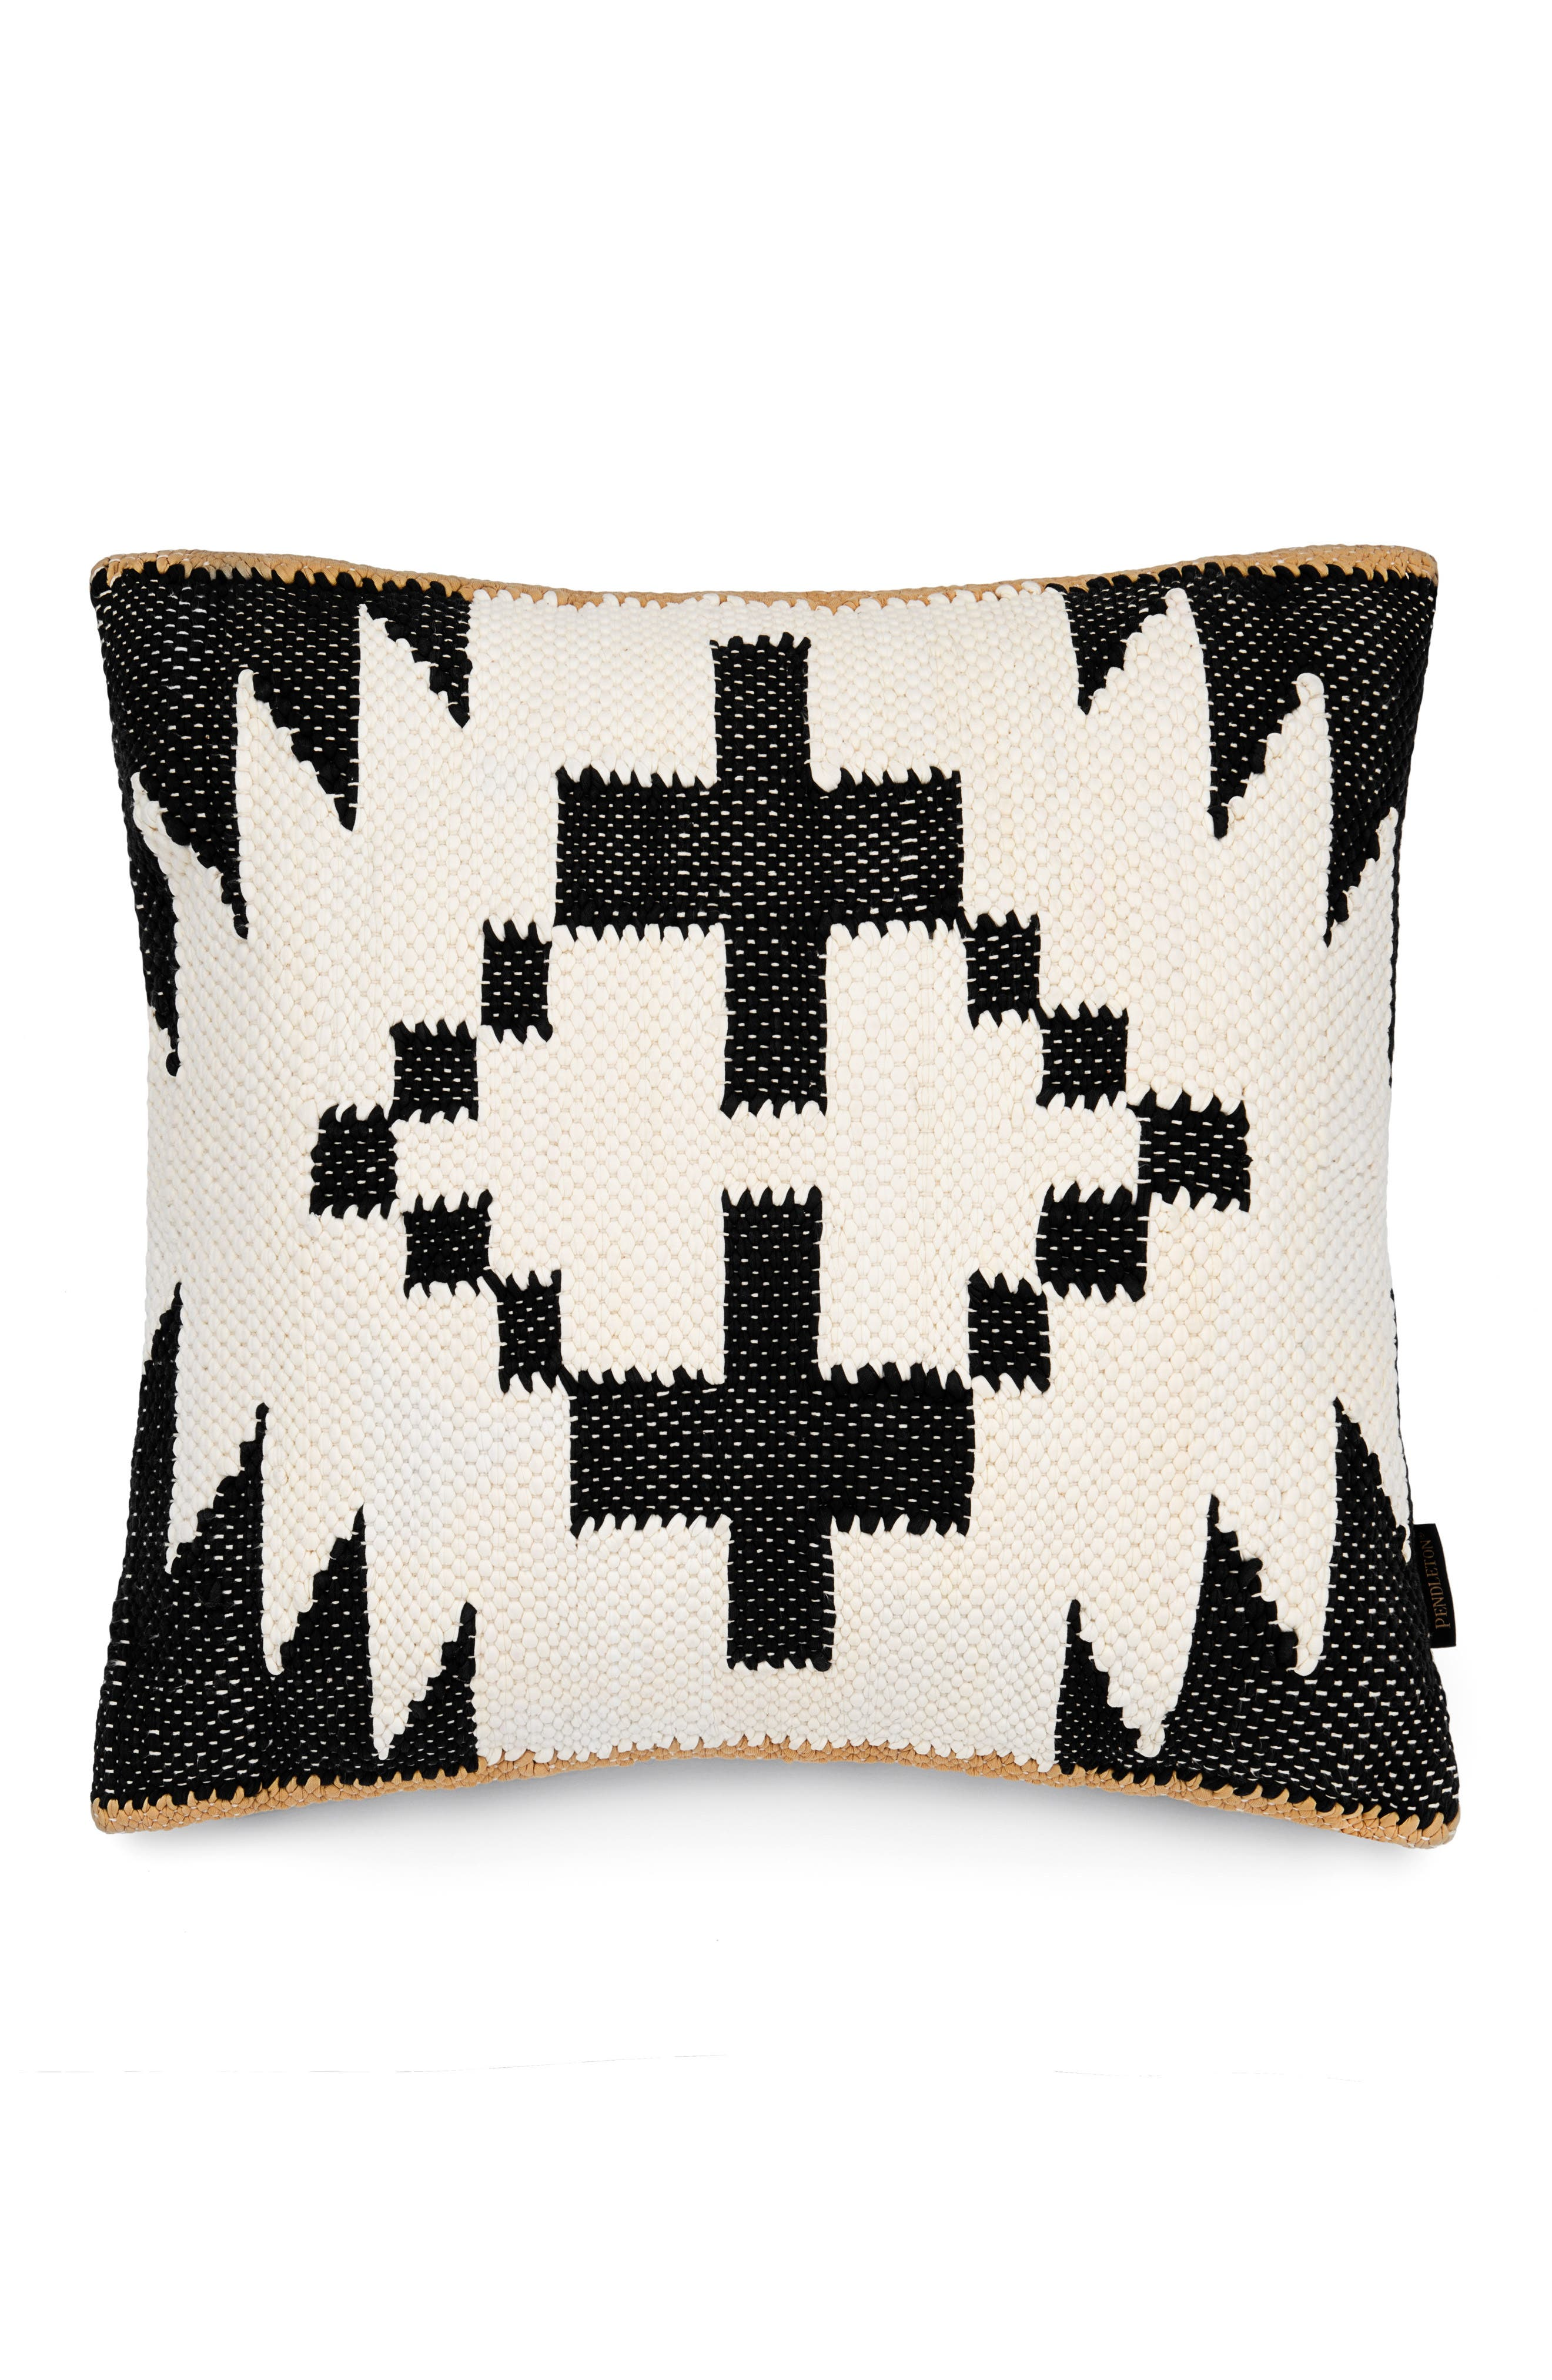 Spider Rock Chindi Oversize Accent Pillow,                             Main thumbnail 1, color,                             Spider Rock Black